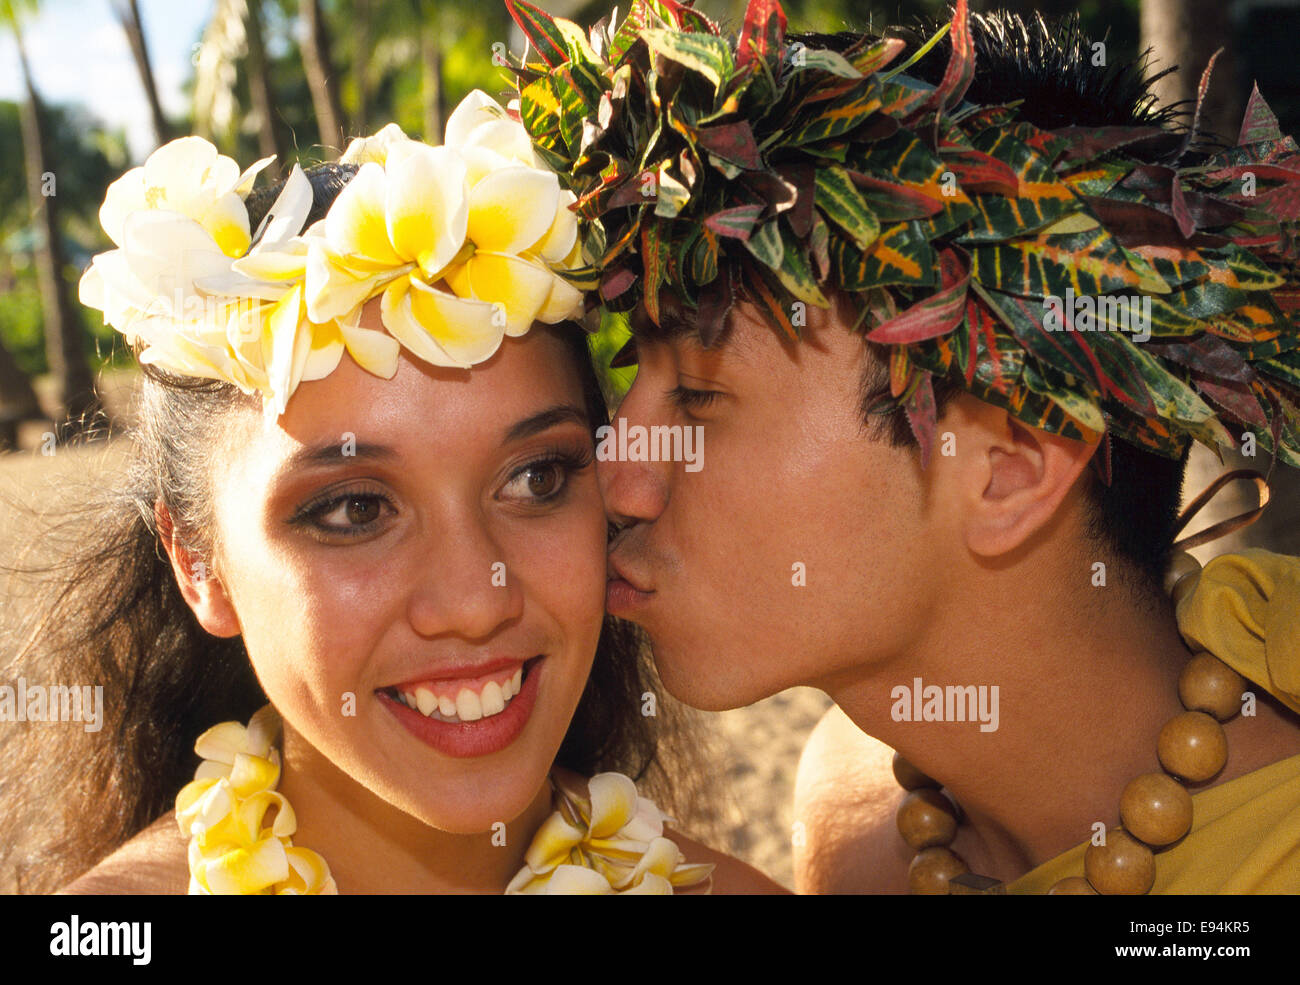 A Hawaiian female hula dancer gets a kiss on the cheek from her fellow entertainer after their performance at a - Stock Image